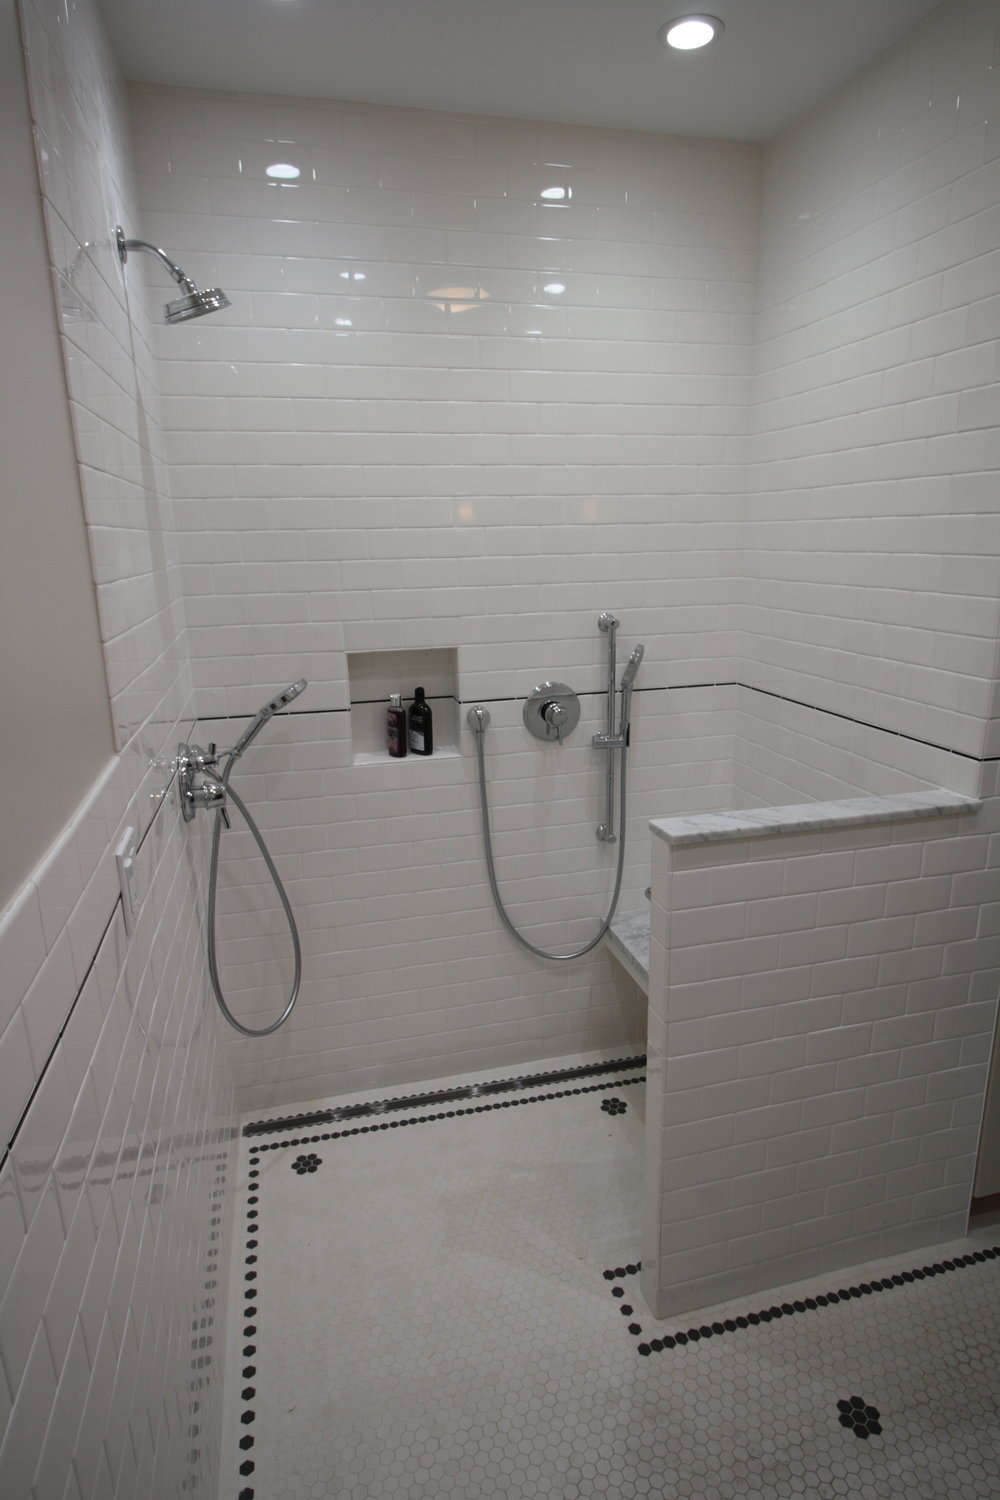 A shower that works standing or seated (prior to glass installation). Individual controls allow for direct use no matter where the bather prefers to shower.